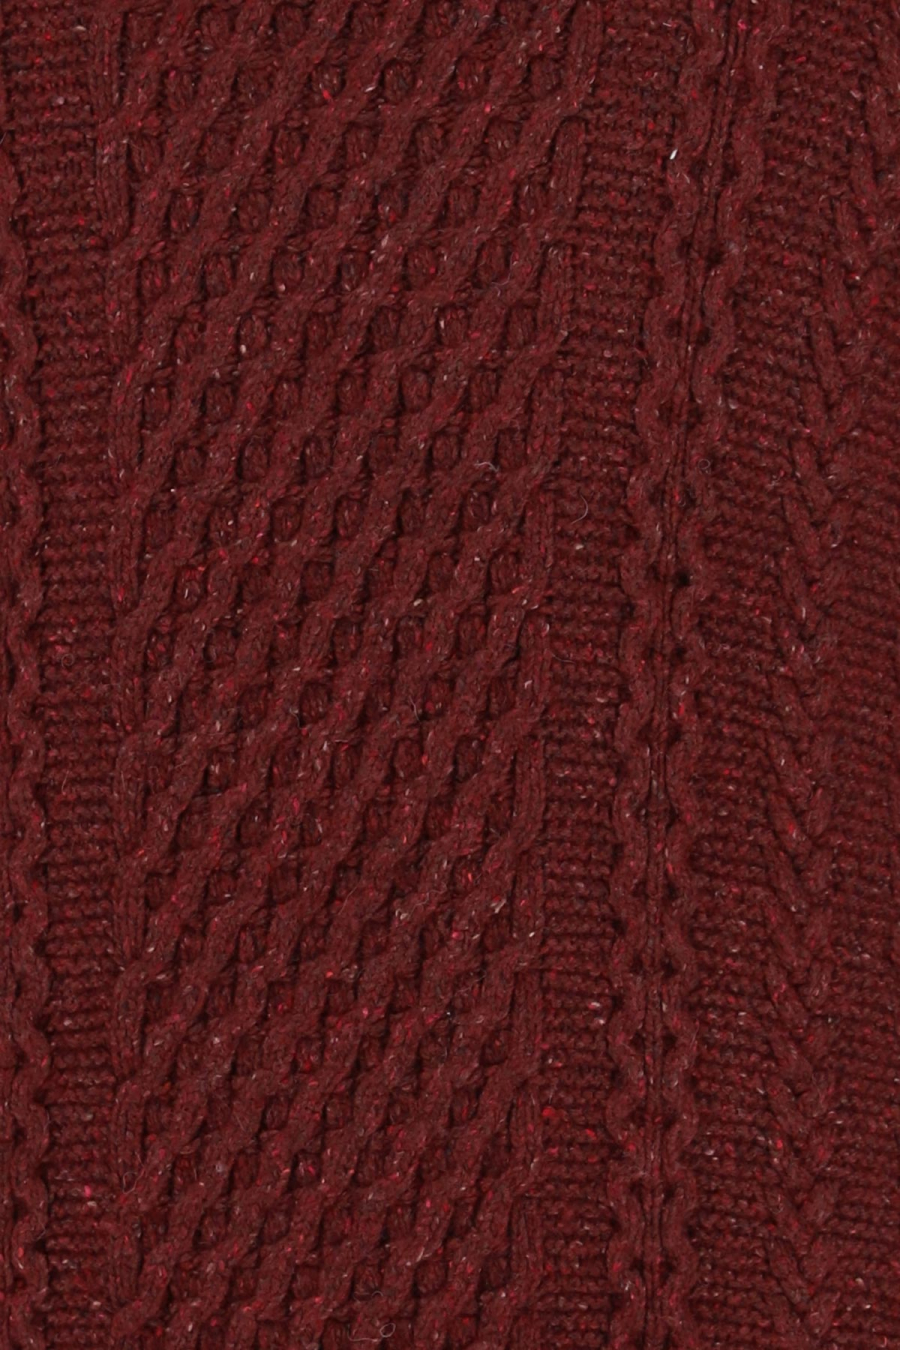 UNITED SWEATER ECOPLANET WOOL BLEND CORDOVAN